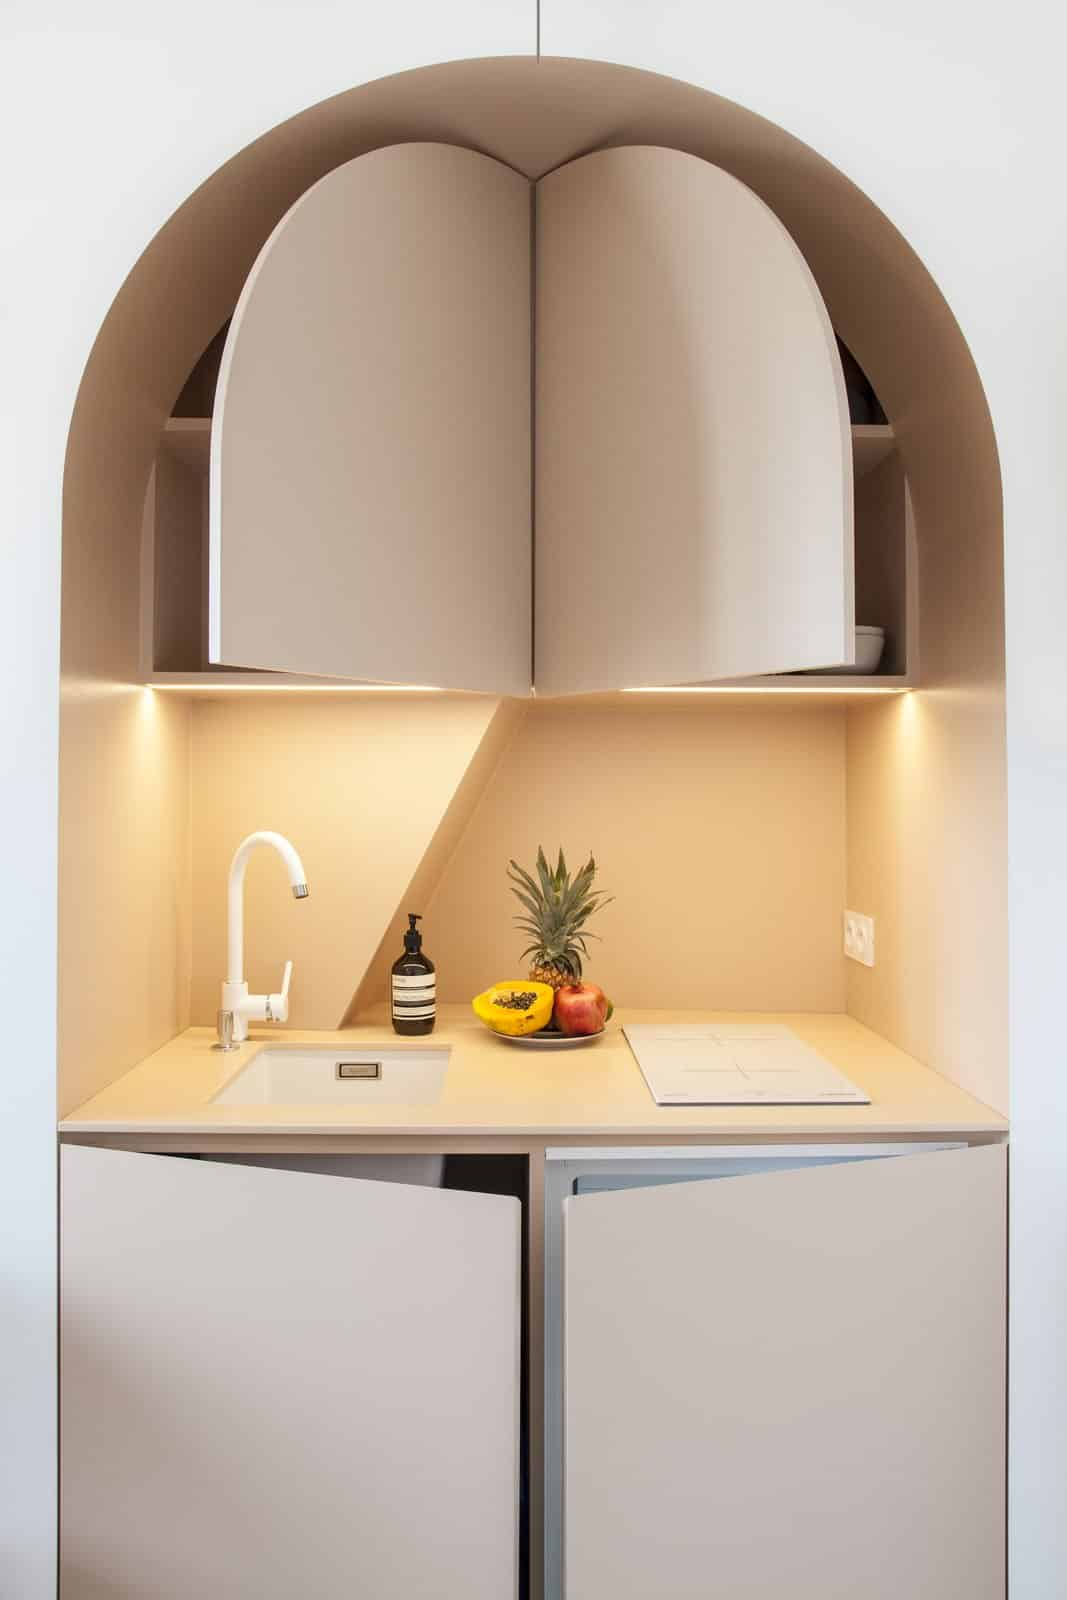 Pop out doors reveal storage space and a tiny refrigerator1